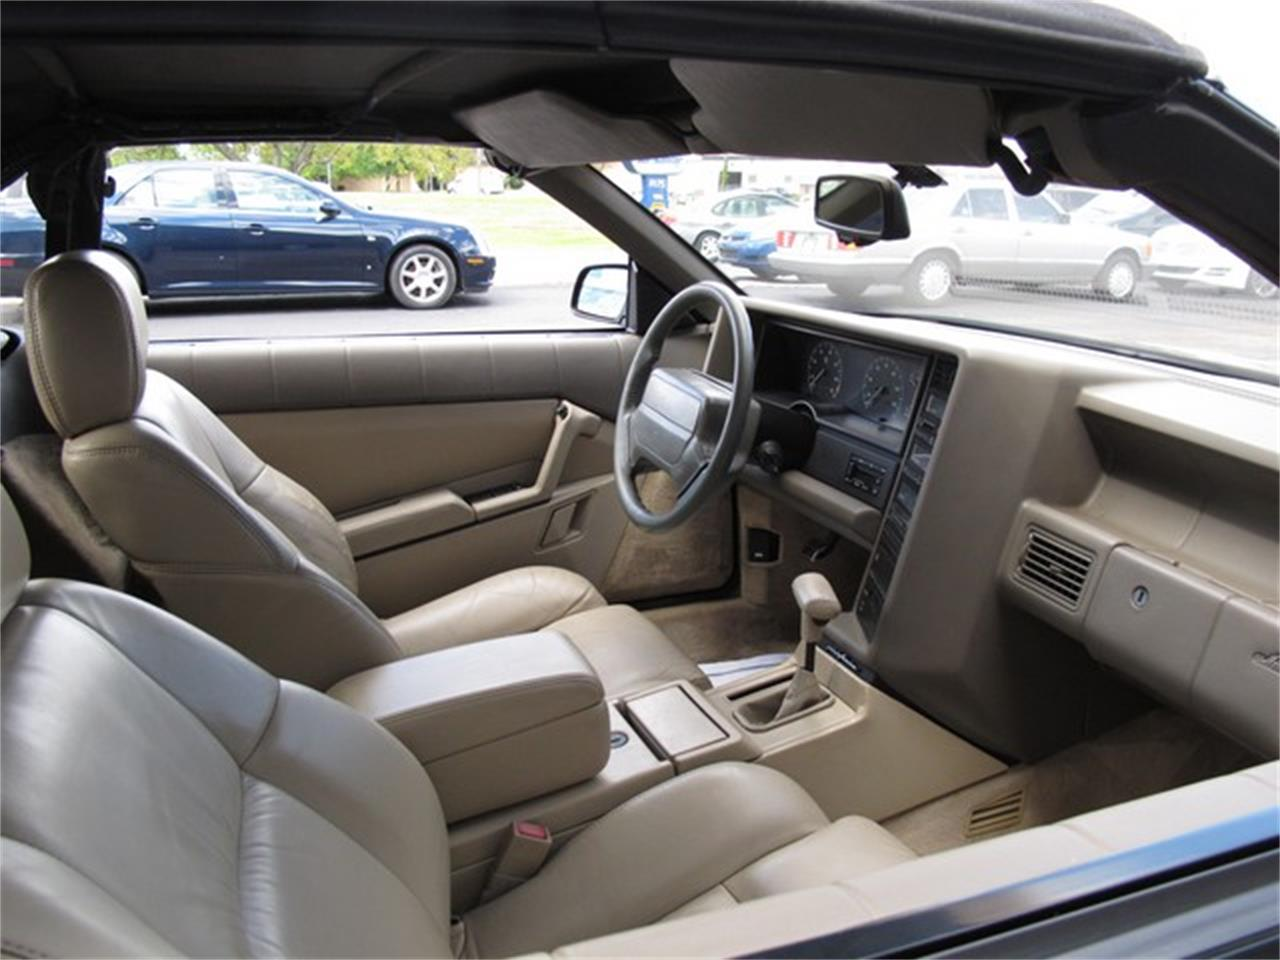 Large Picture of 1993 Cadillac Allante located in Troy Michigan - $14,900.00 - IQM6